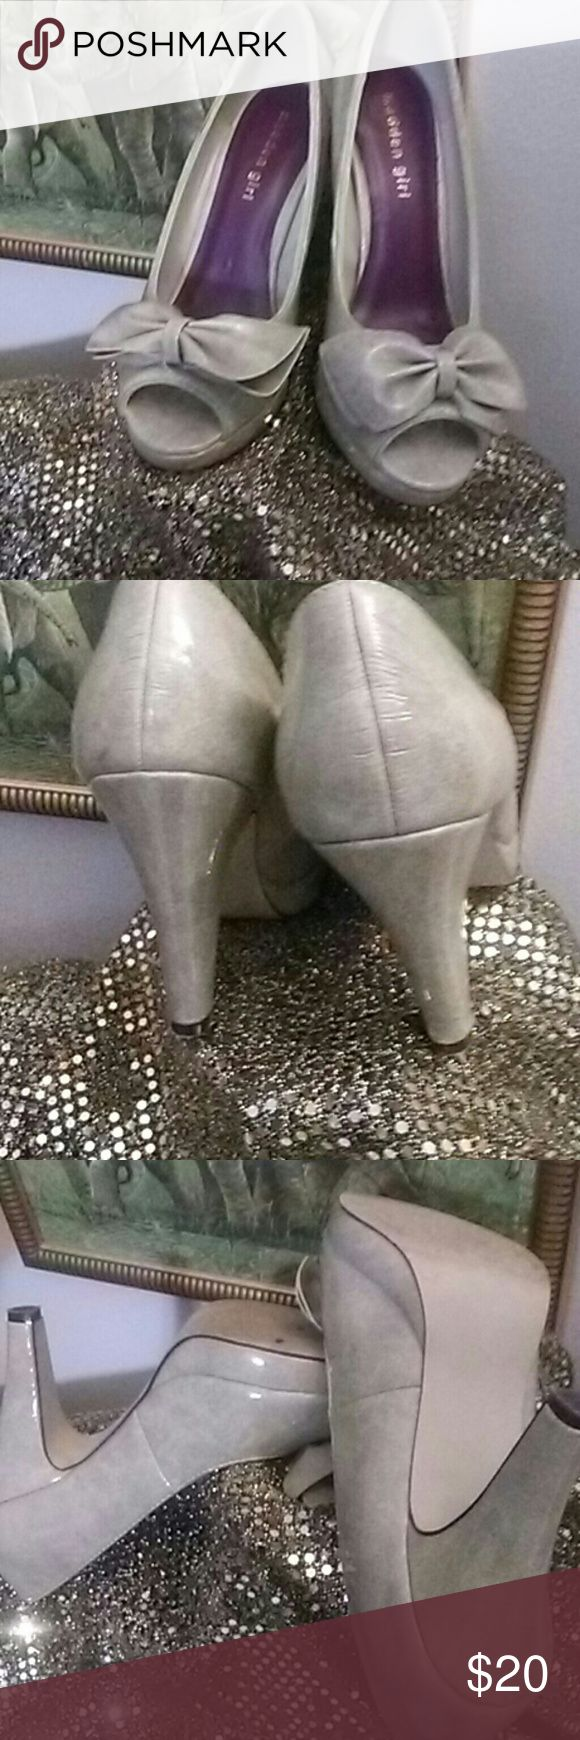 "Bone Color Madden Girl Shoes Step Out in These Stylish Bone Color Patent look Madden Girl ""Limmeric"" Peep-Toe, Platform Shoes with Bows! They'll look Awesome on your feet!! Three barely noticeable gray spots on outer left shoe. Very good condition. Madden Girl Shoes Heels"